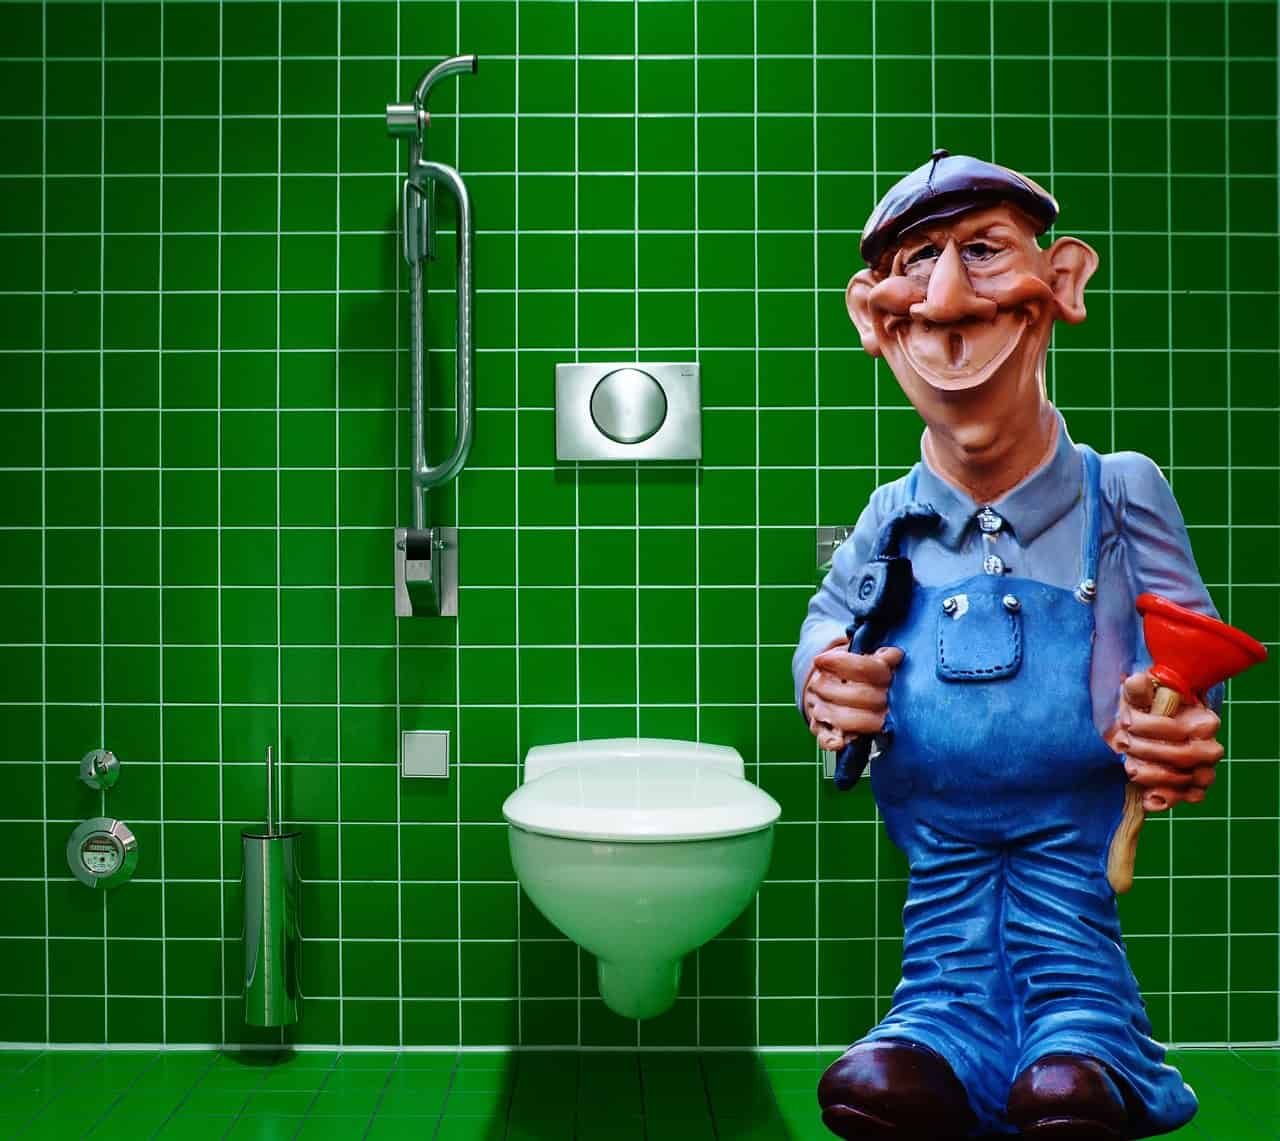 showing a doll of a plumber in a toilet on visit at a privat residence with shower or a handicap toilet